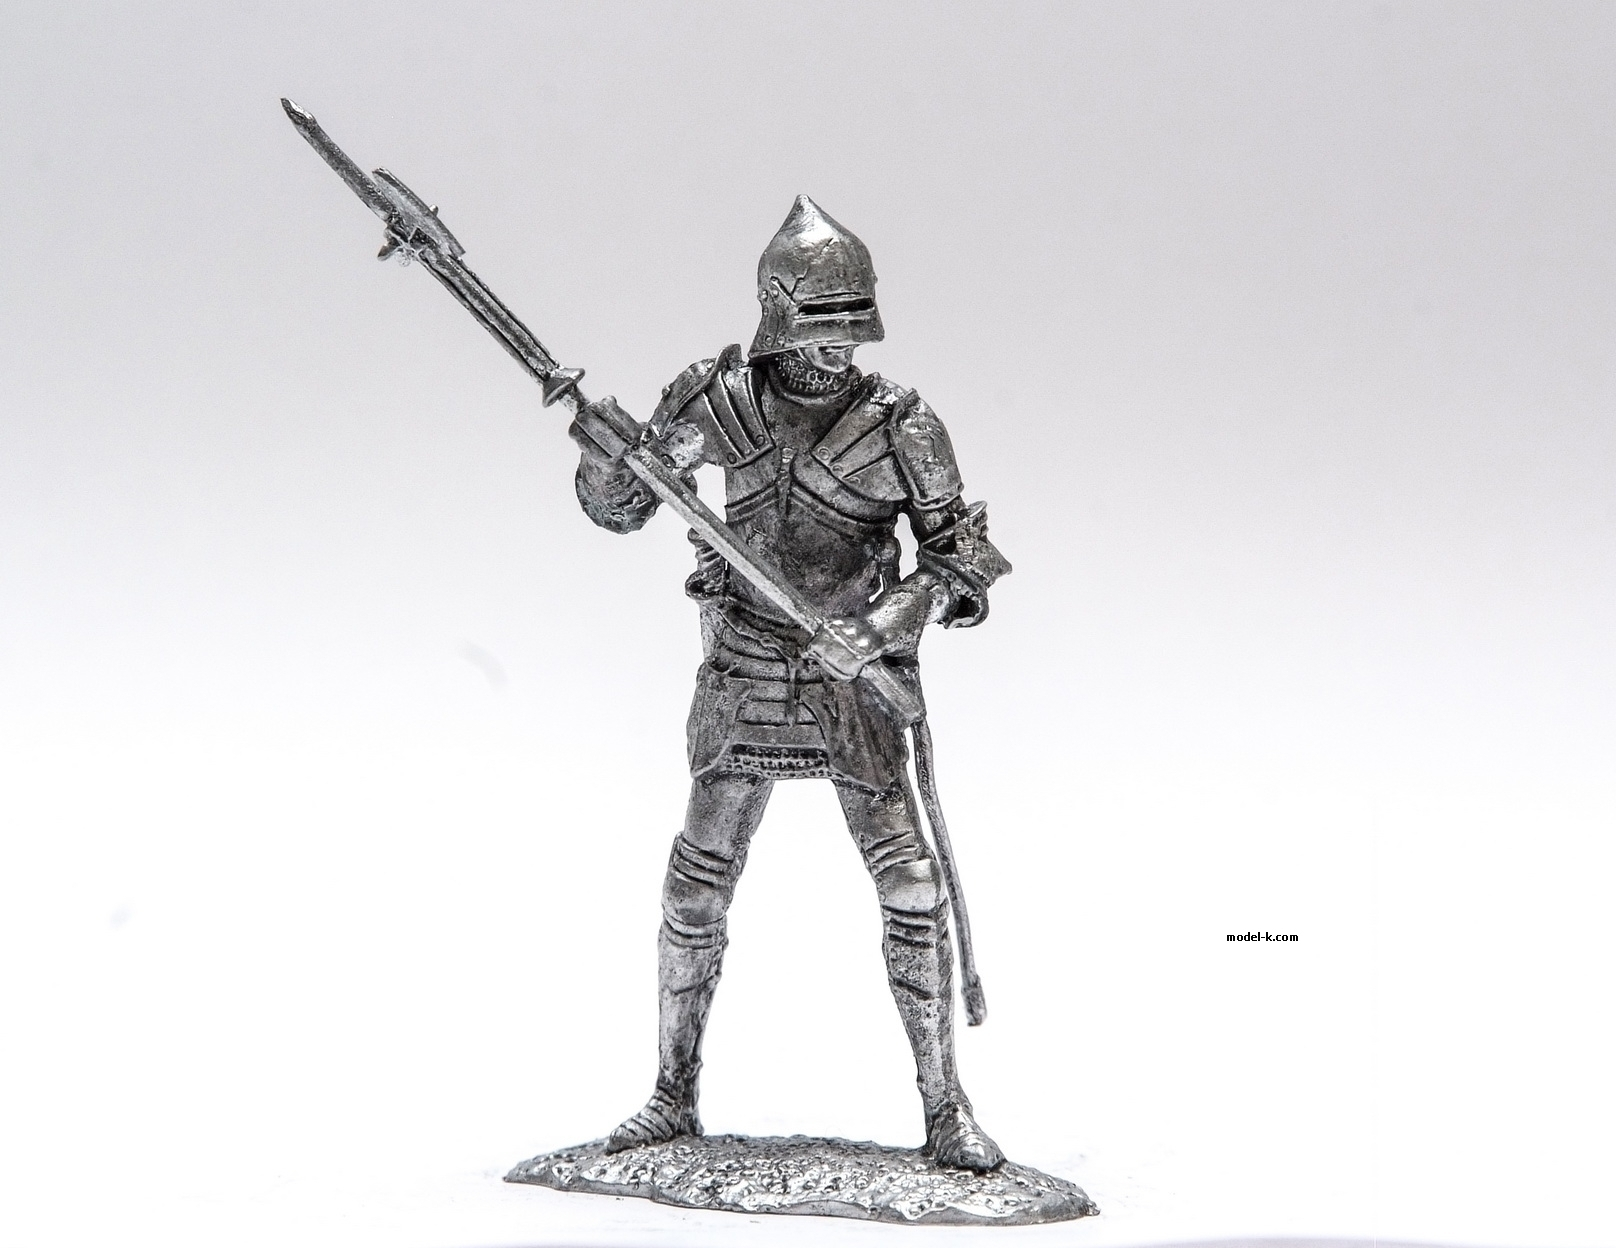 1:32 Scale Metal Miniature of Metal Figurine English cuirassier XV century